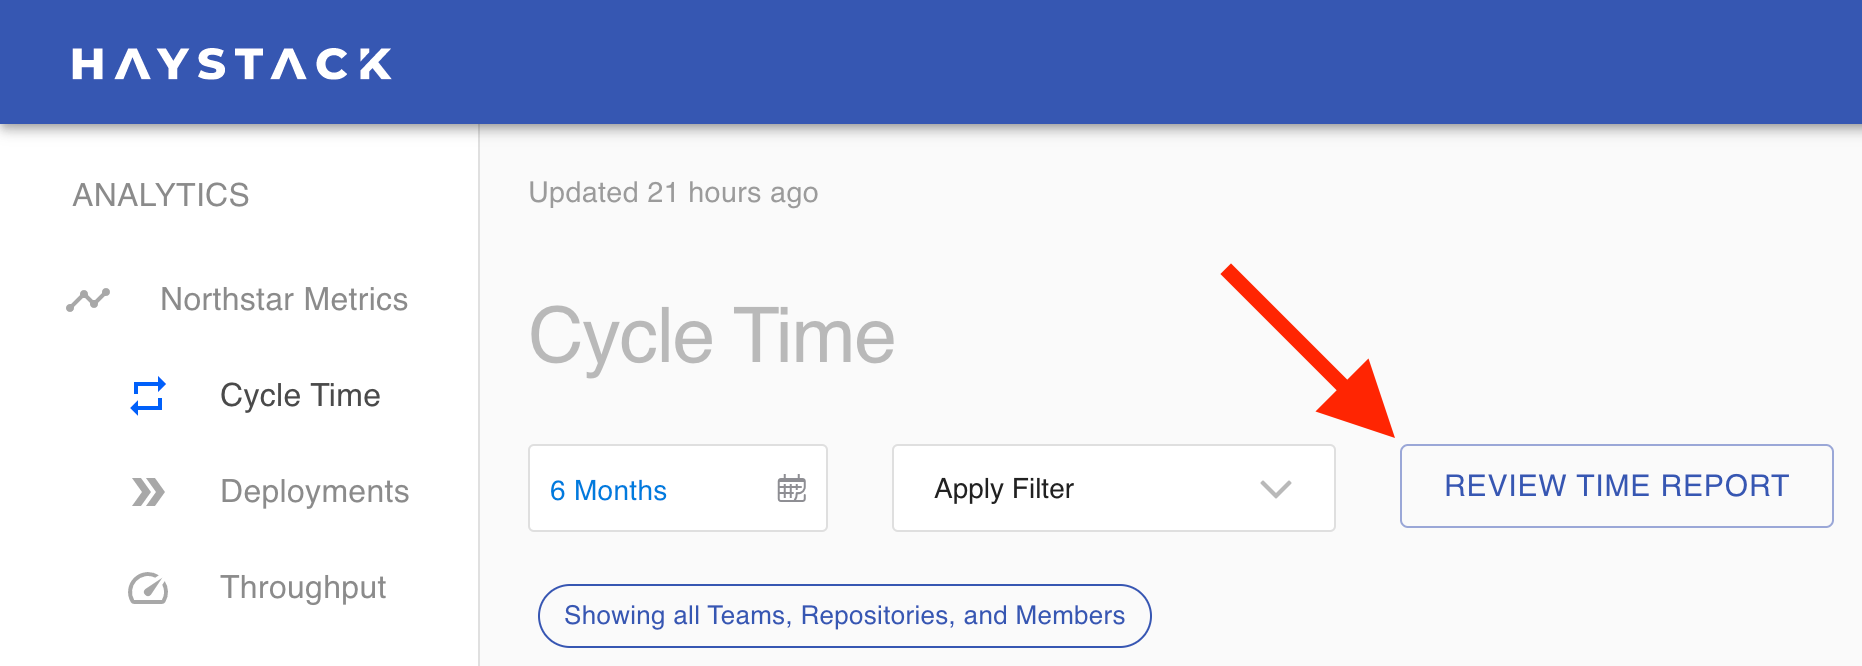 Finding the Review Time Report in the Haystack Dashboard